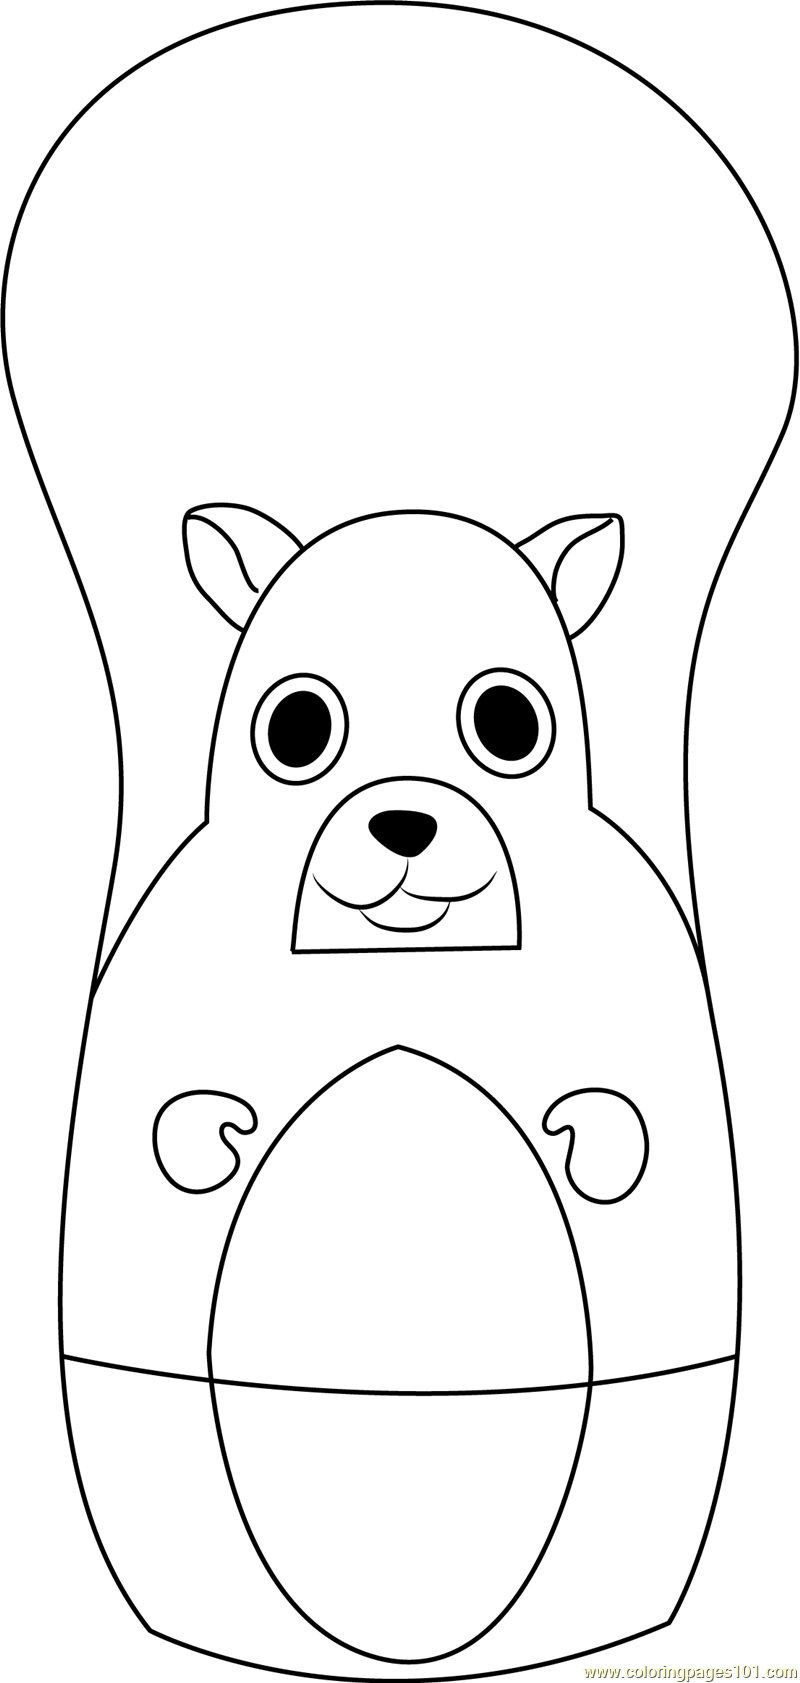 higglytown heroes coloring pages - higglytown heroes sitting coloring page free higglytown